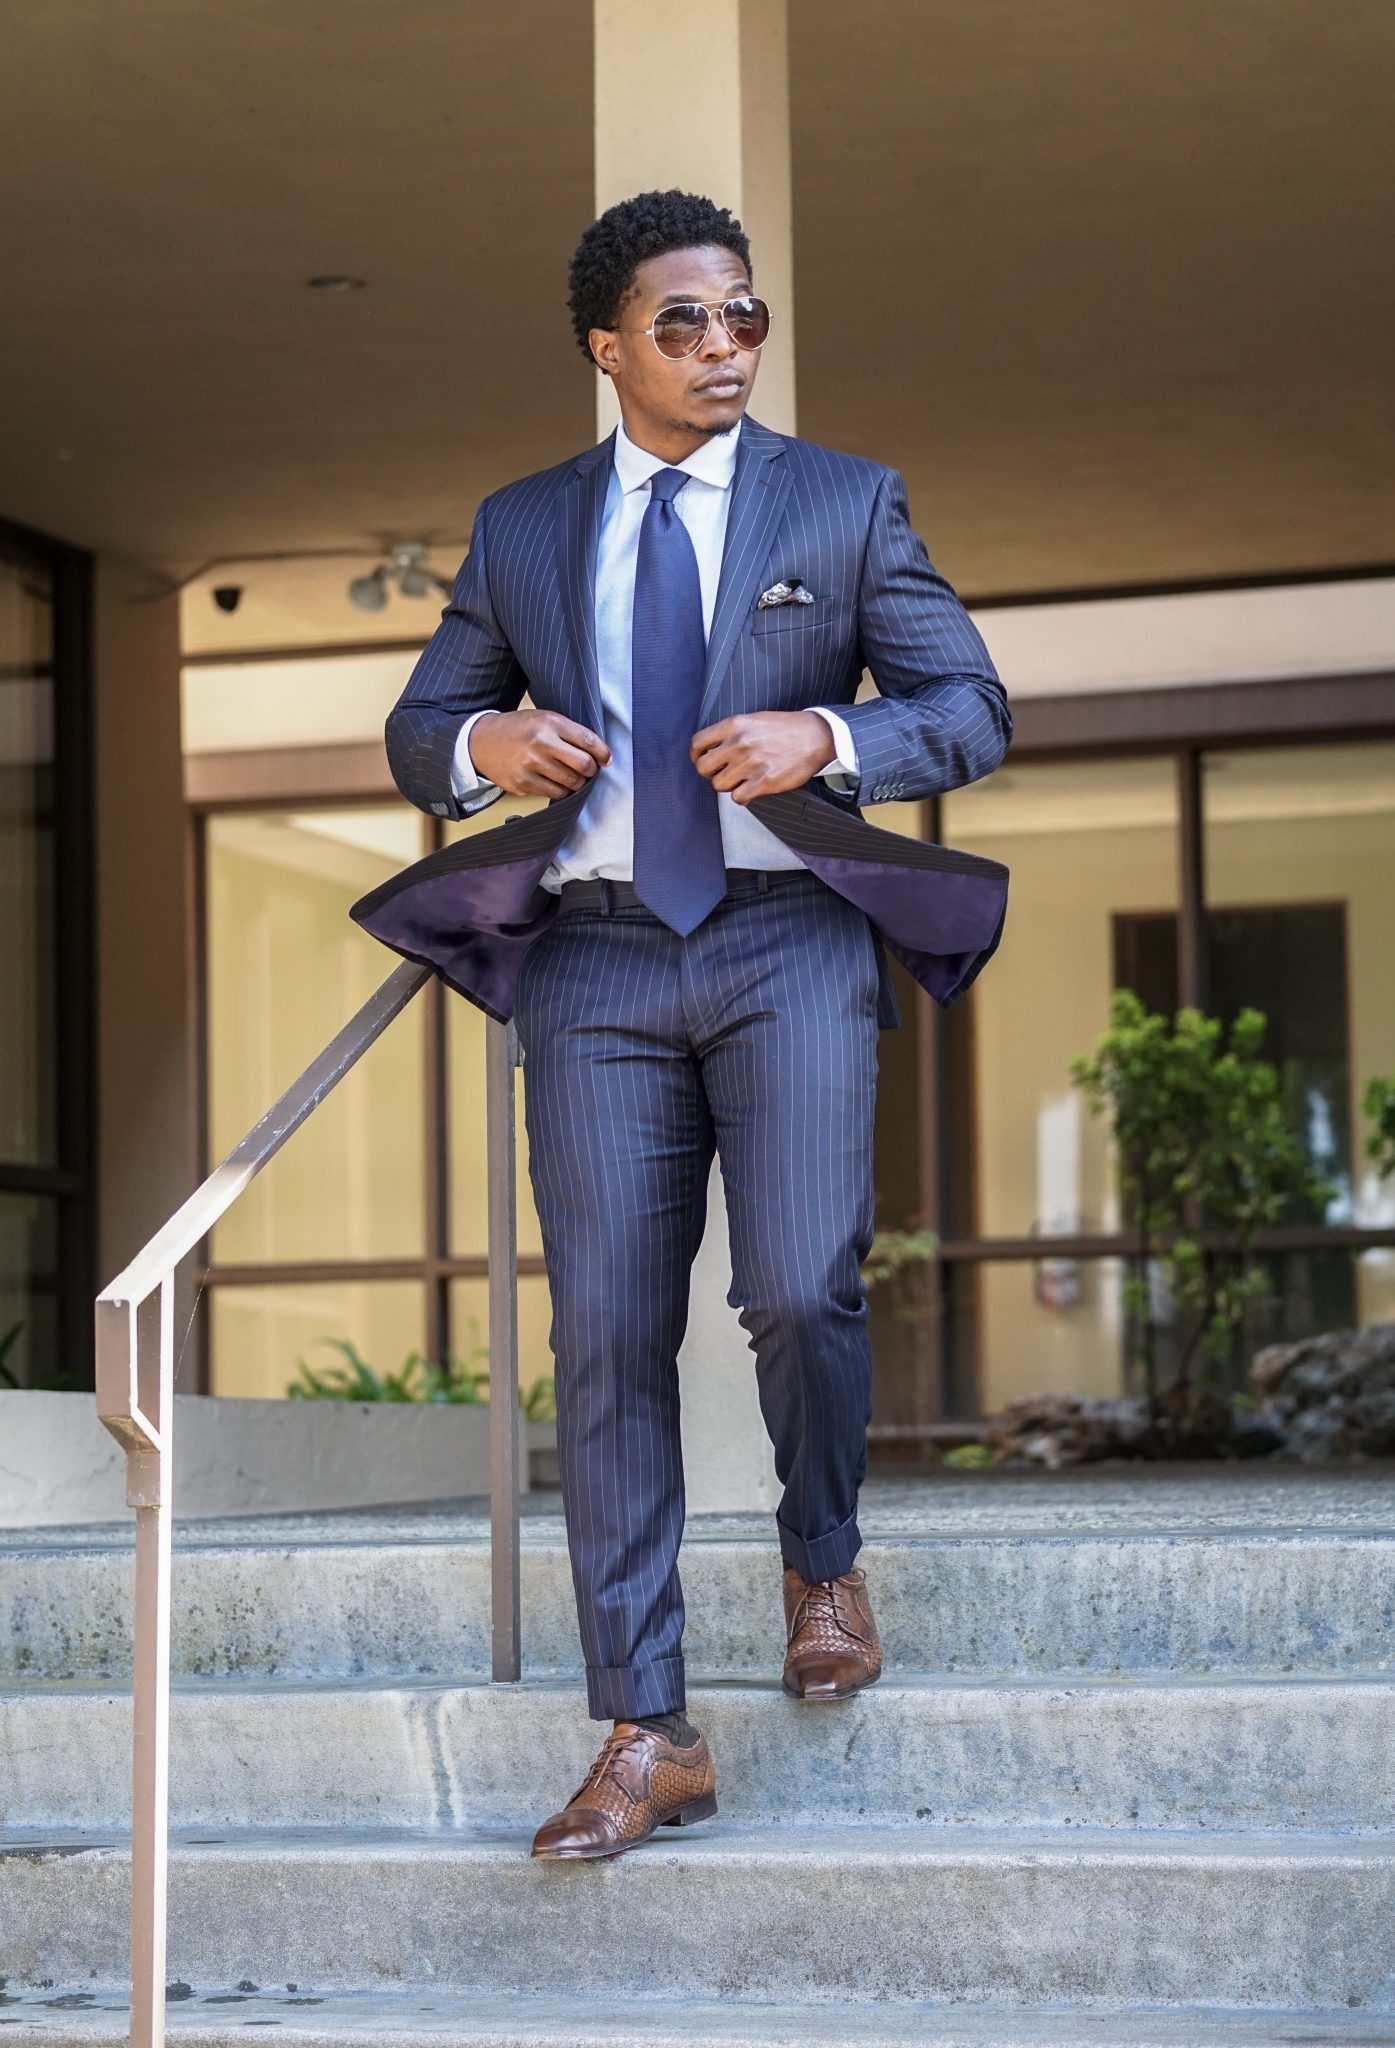 How To Dress Like A Boss, Even If You Aren't One